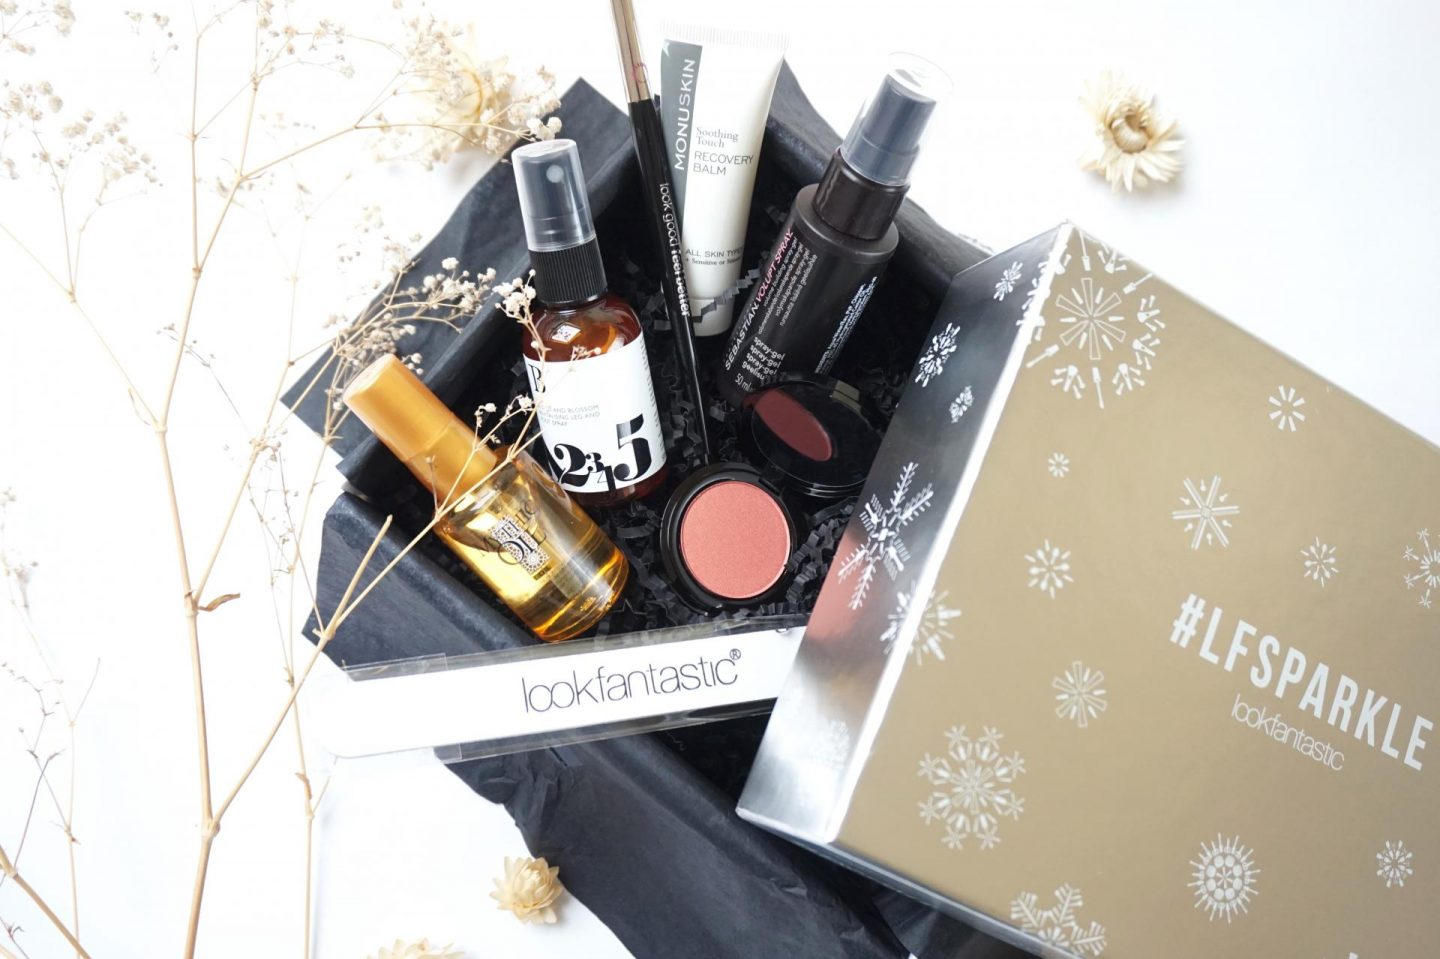 Beautybox: Lookfantastic November